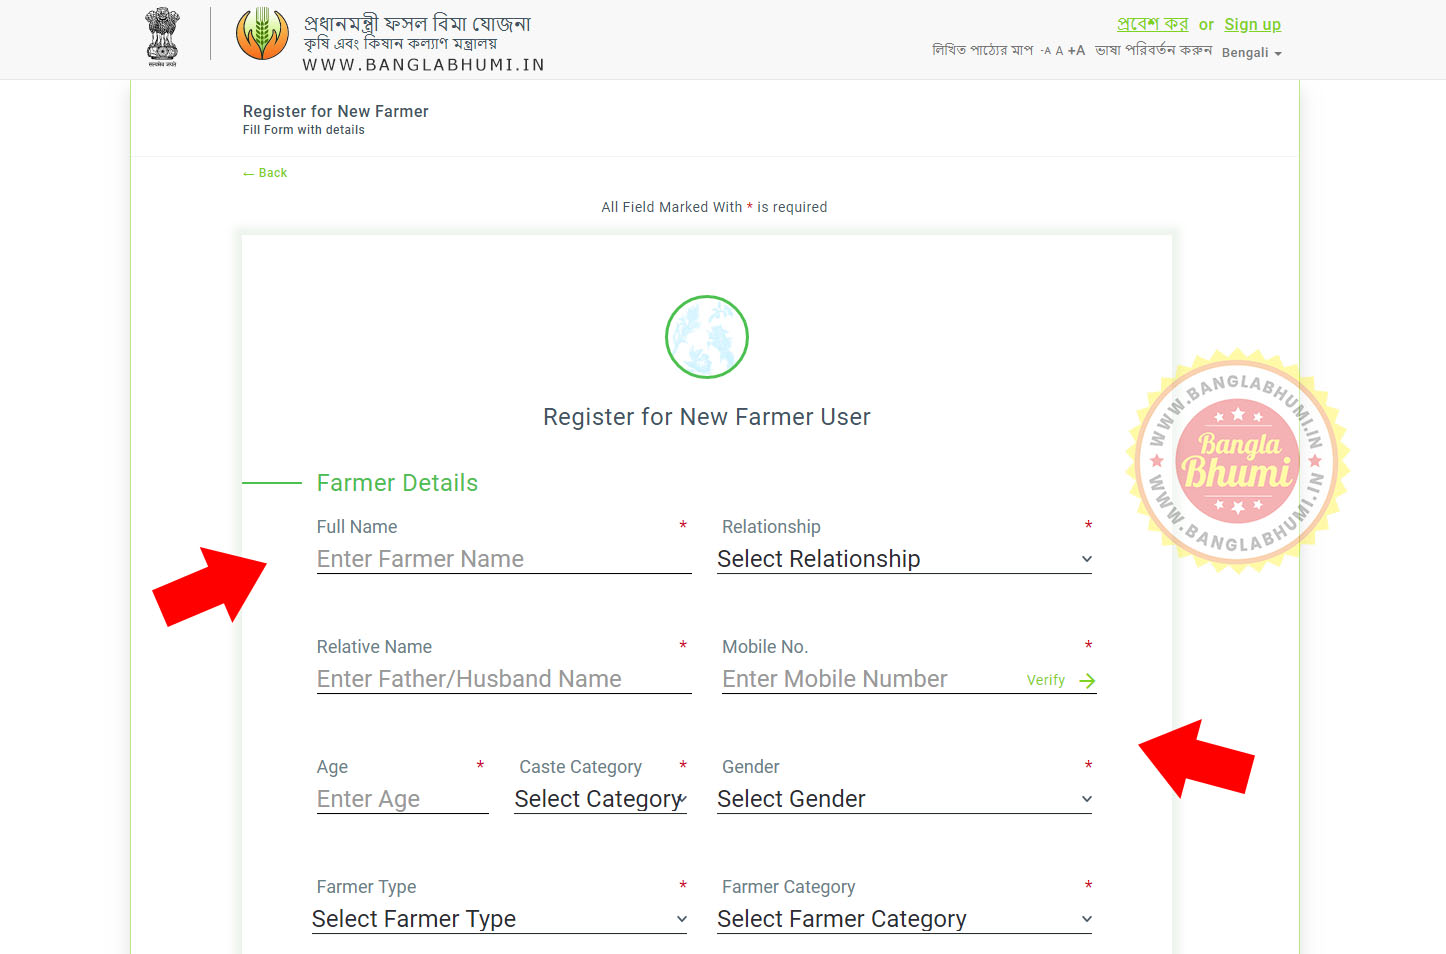 Online Application Form for Pradhan Mantri Fasal Bima Yojana West Bengal